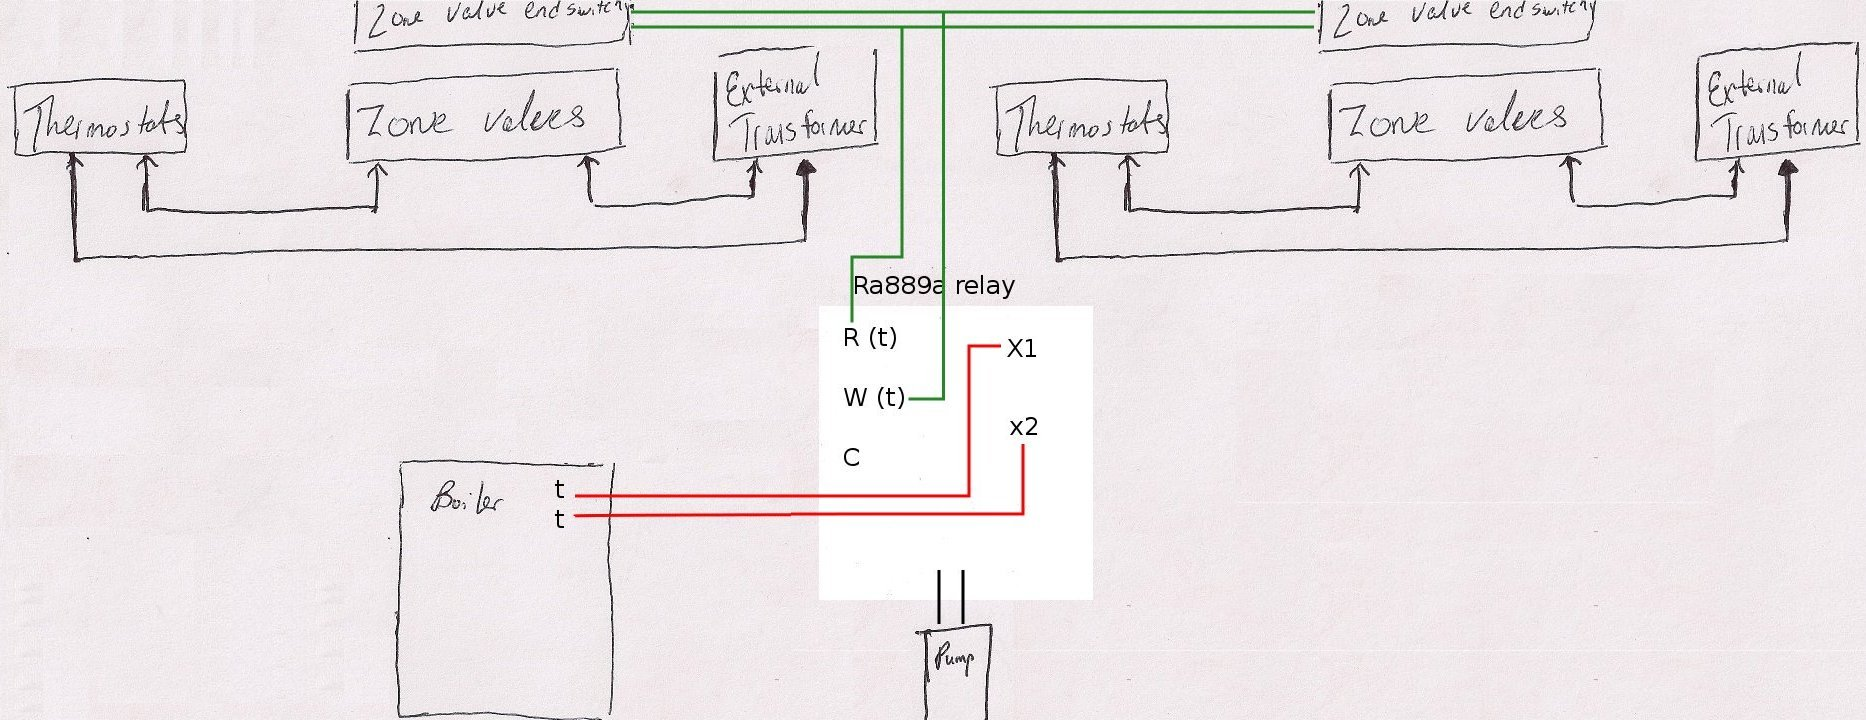 adding honeywell ra889a to system with external transformer  u2014 heating help  the wall